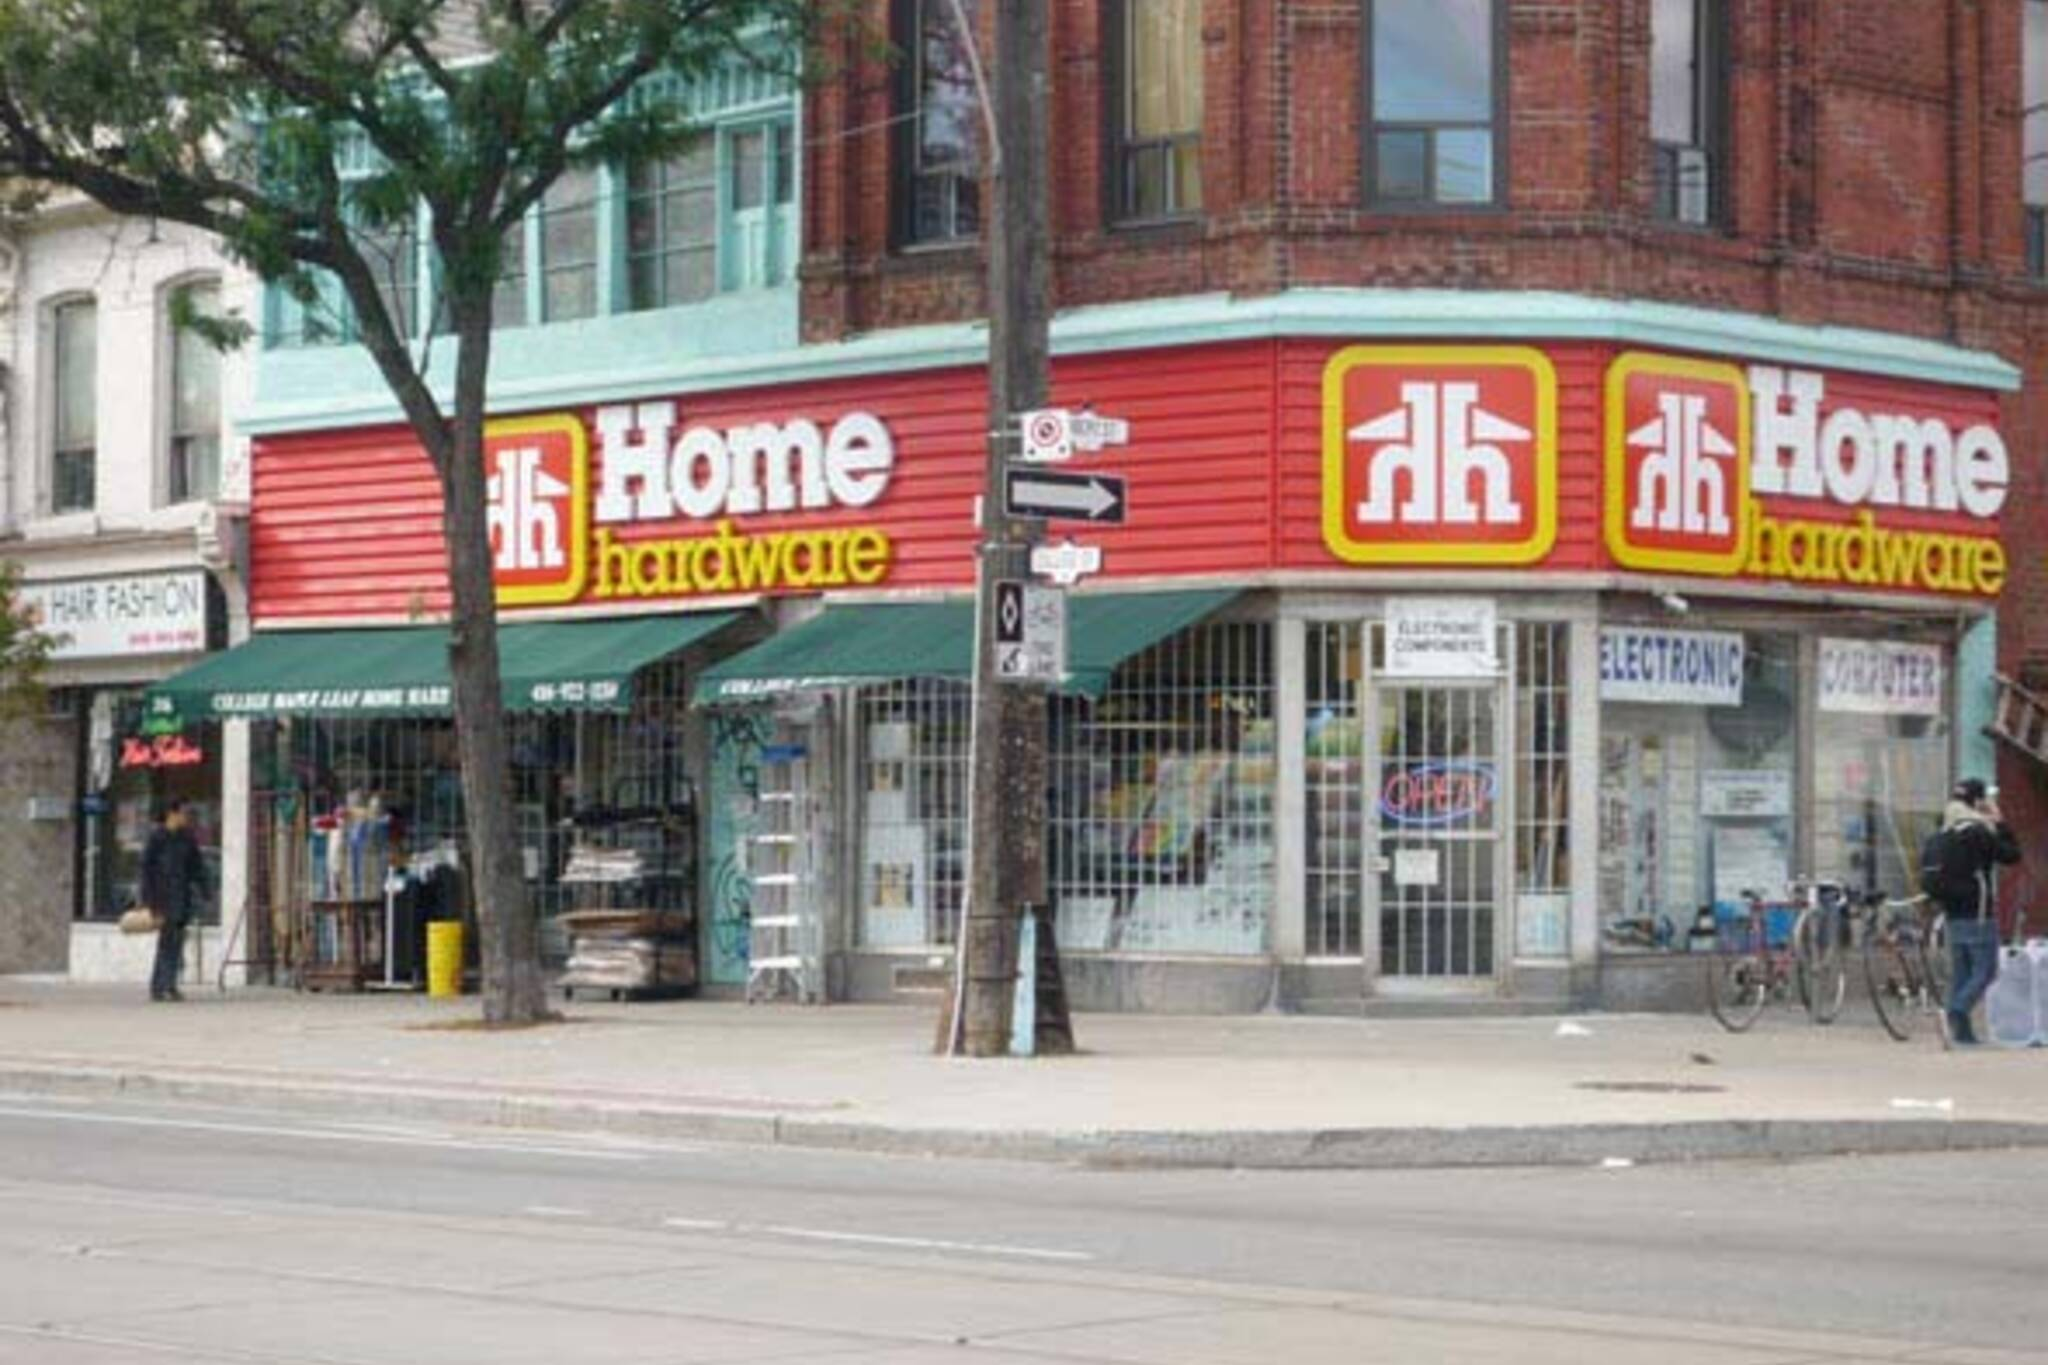 The Home Hardware on College